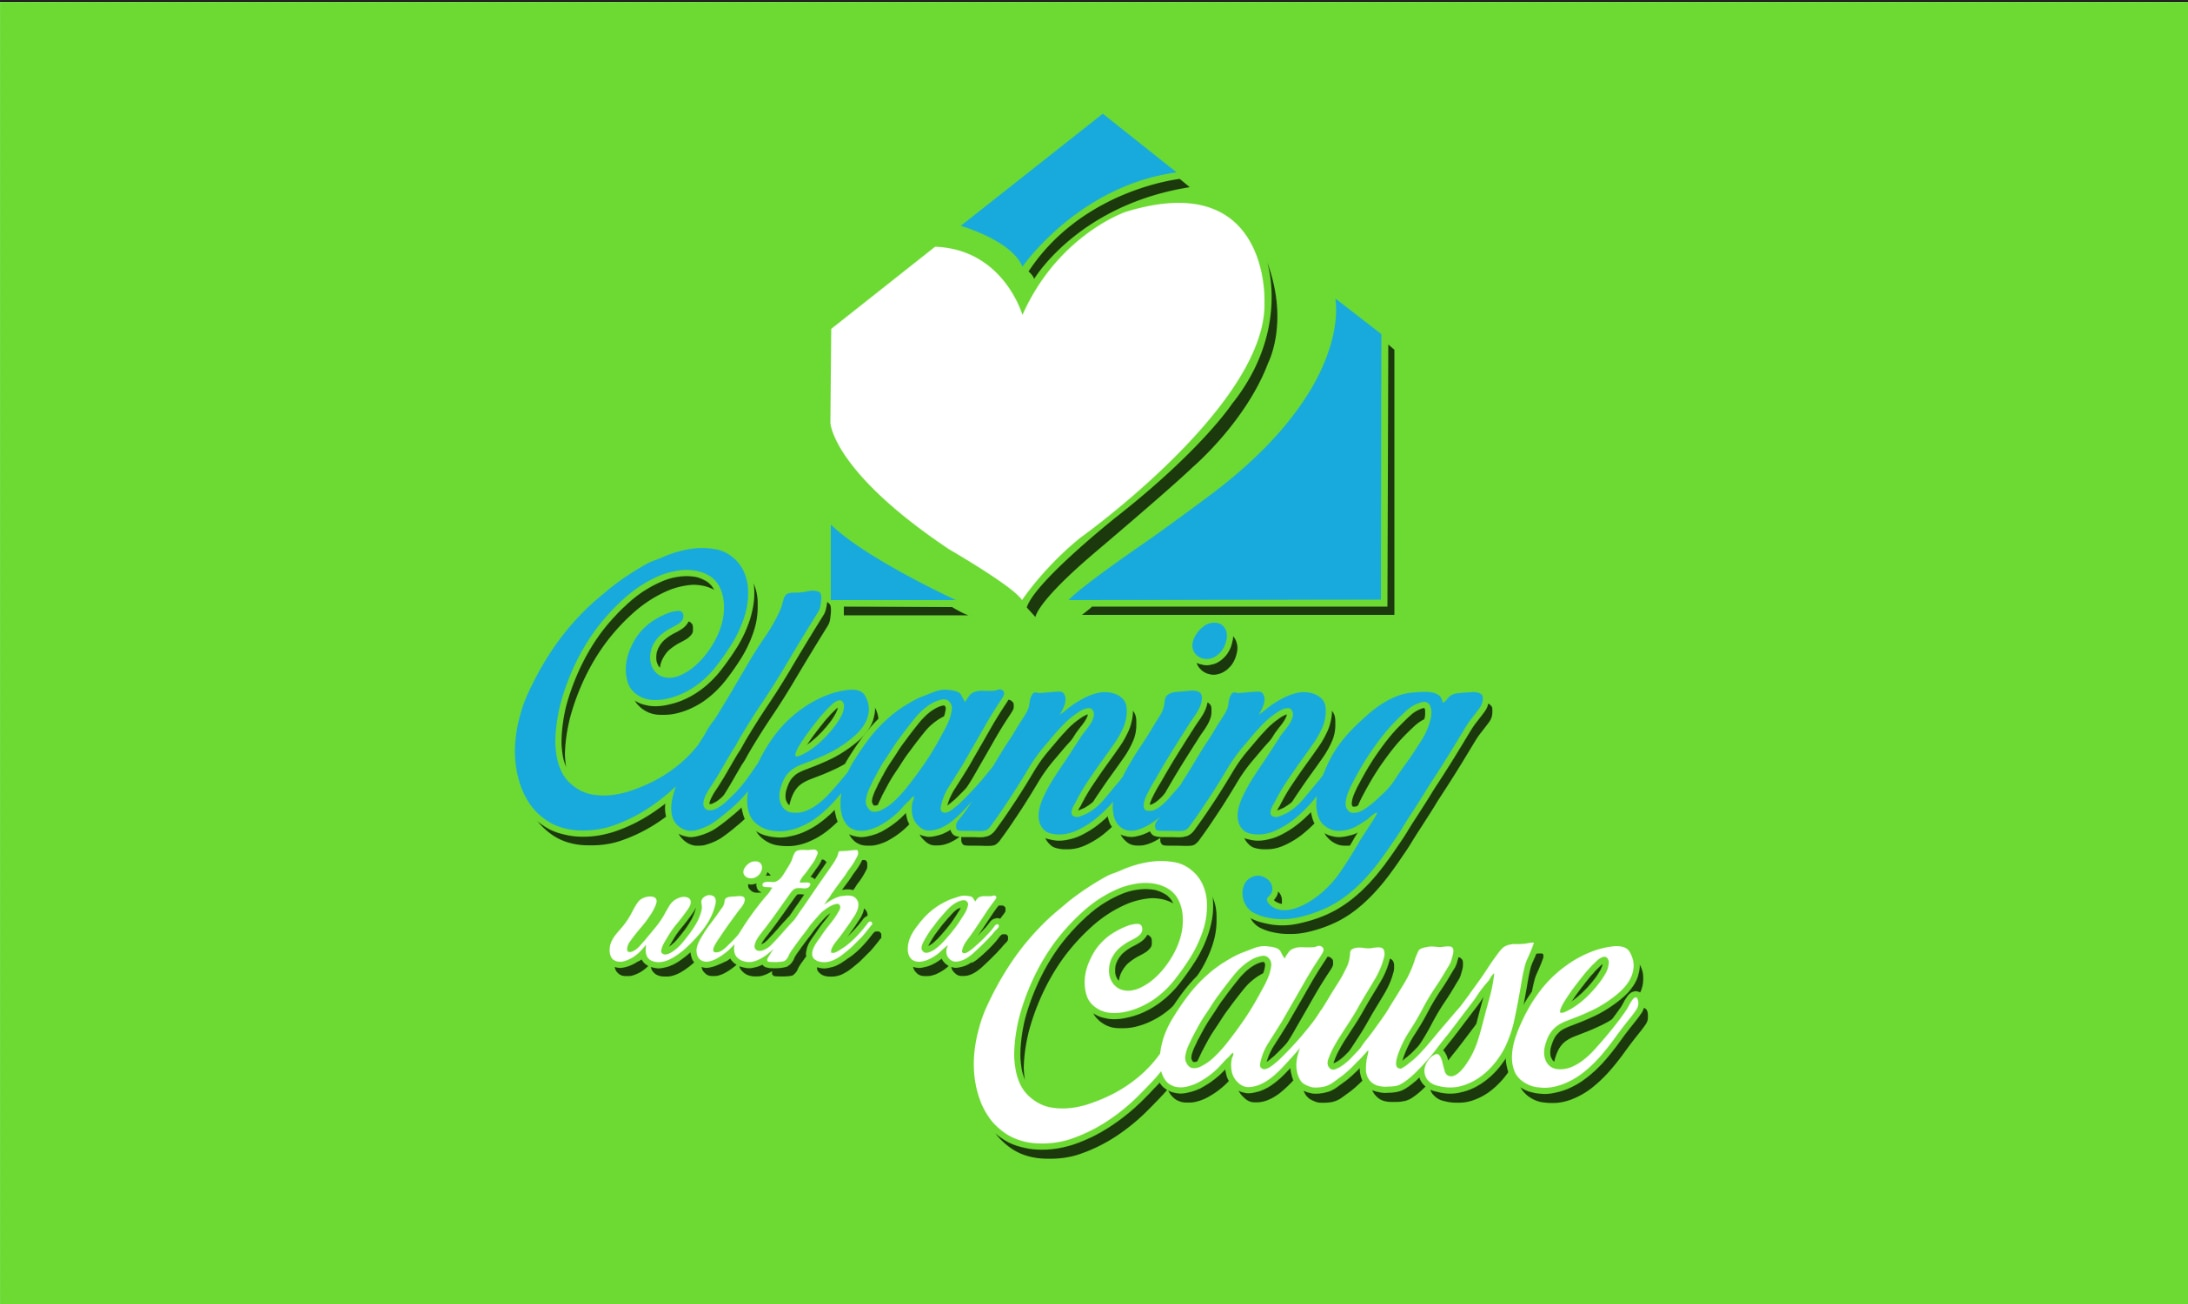 Cleaning With A Cause logo